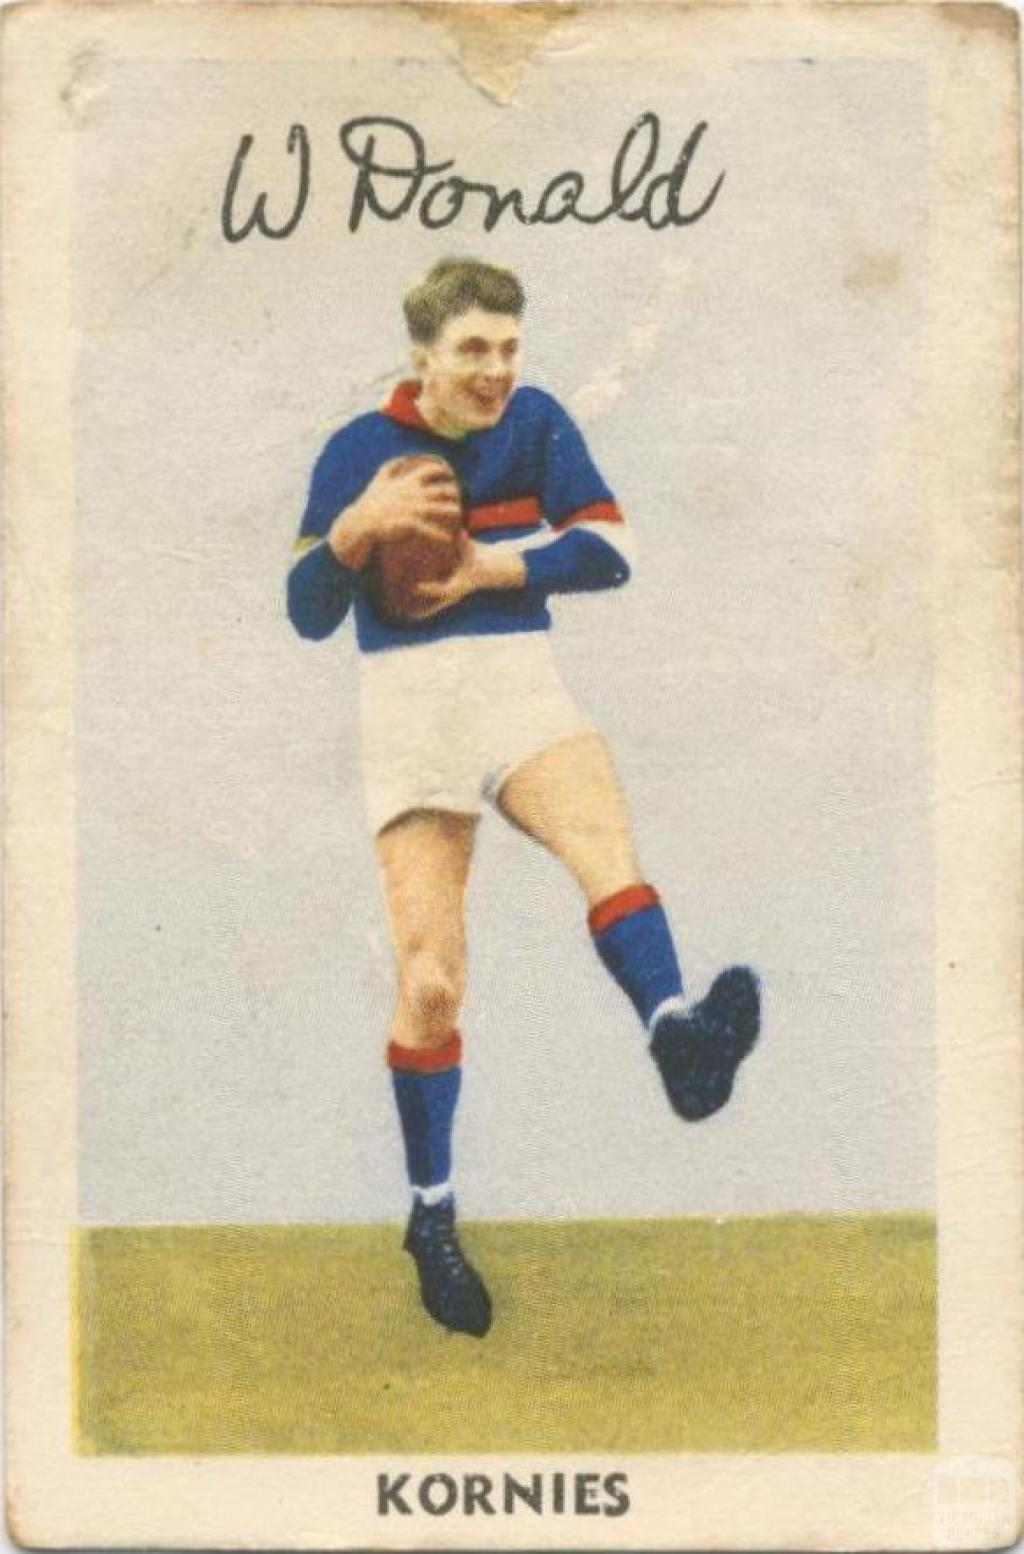 W. Donald, Footscray Football Club, Kornies Card